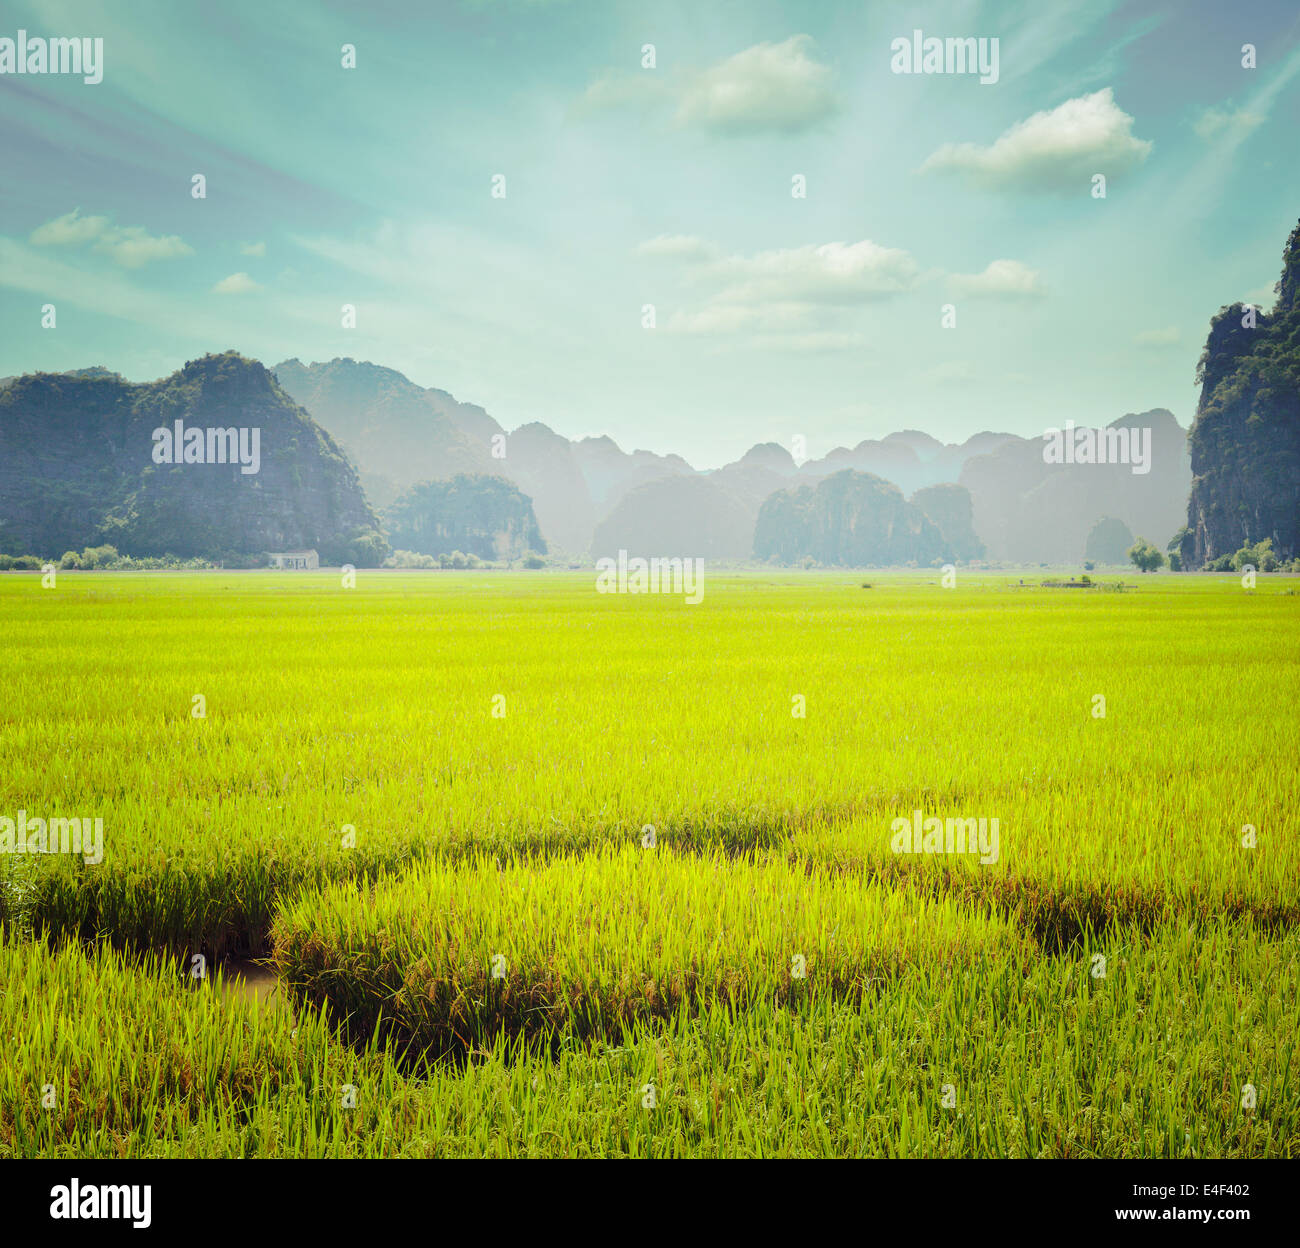 Vintage retro hipster style travel image of rice field. Tam Coc, Vietnam - Stock Image